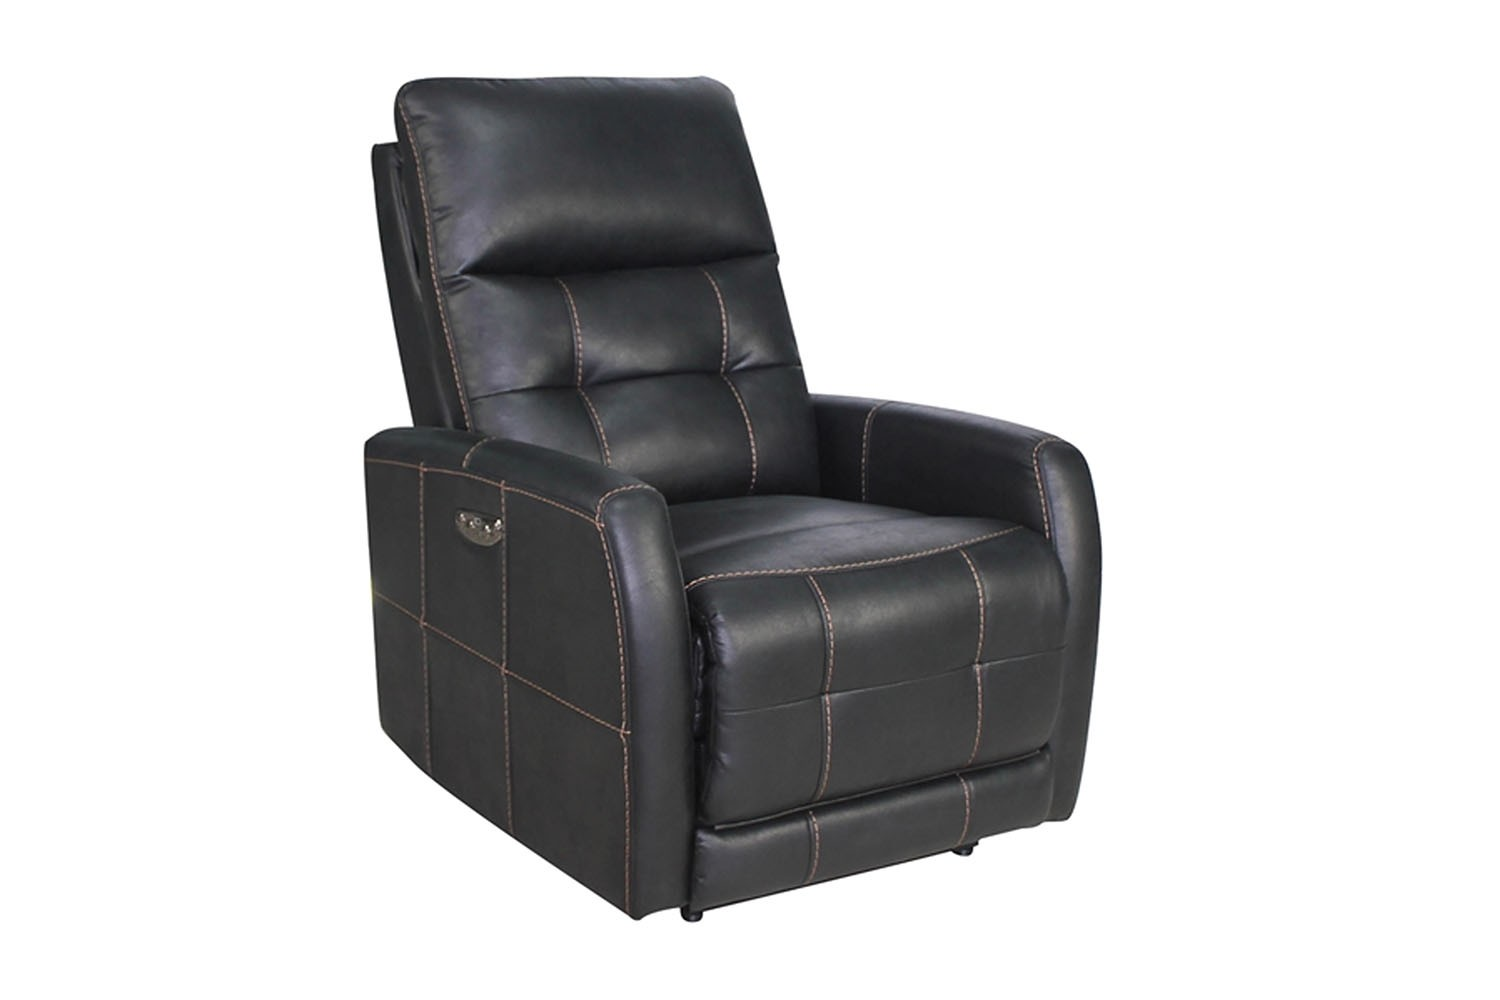 Eclipse Power Lift Chair Mor Furniture For Less